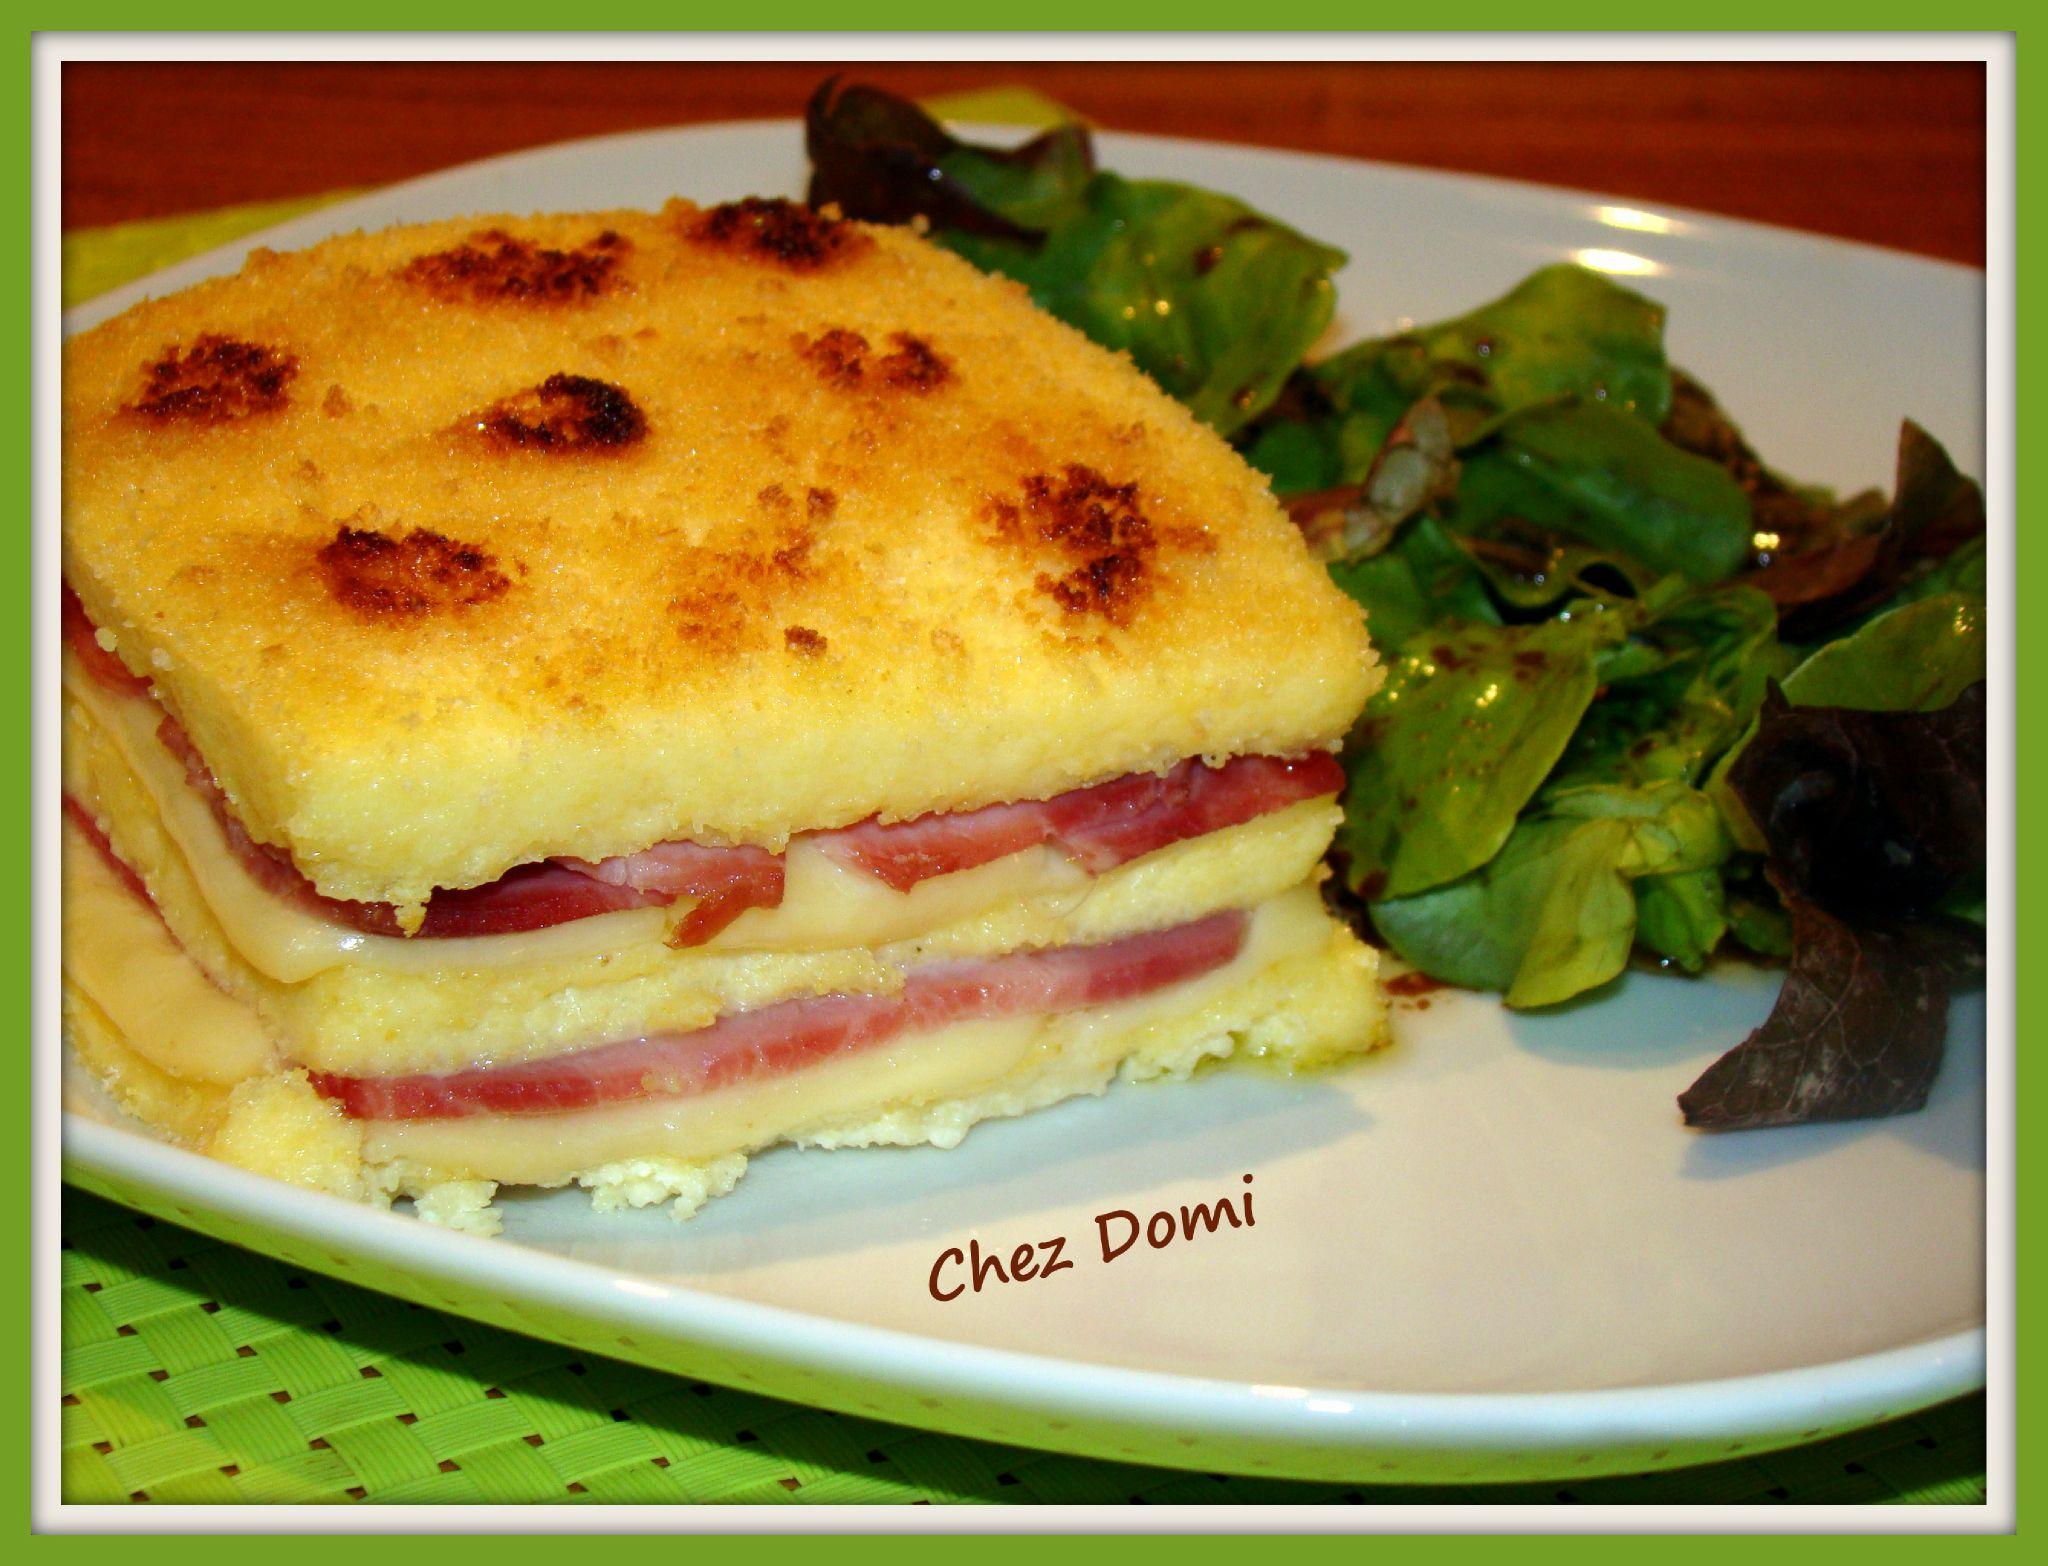 Croque-monsieur de polenta